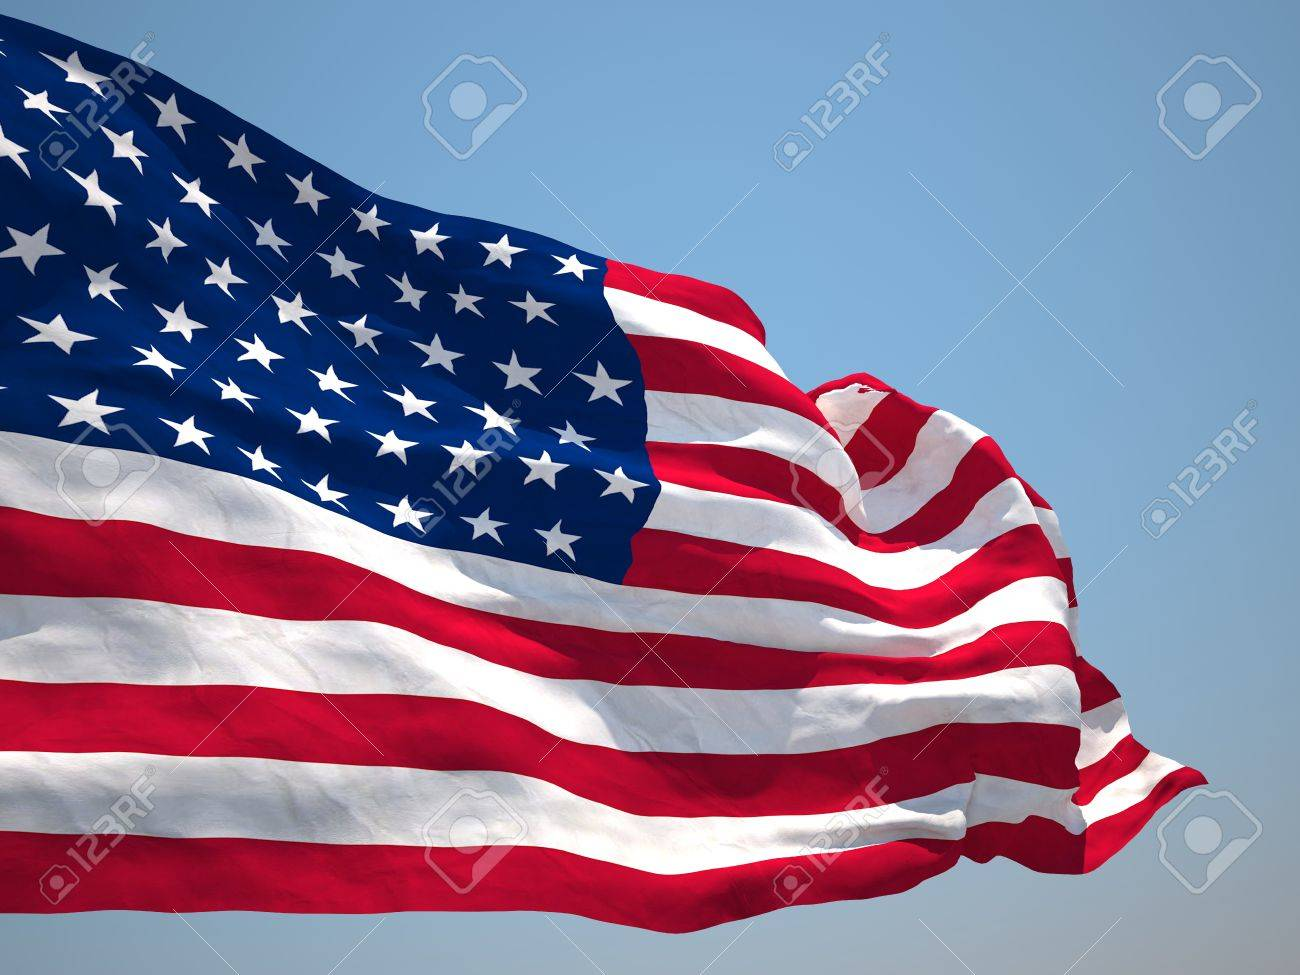 usa united states of america hd flag stock photo, picture and